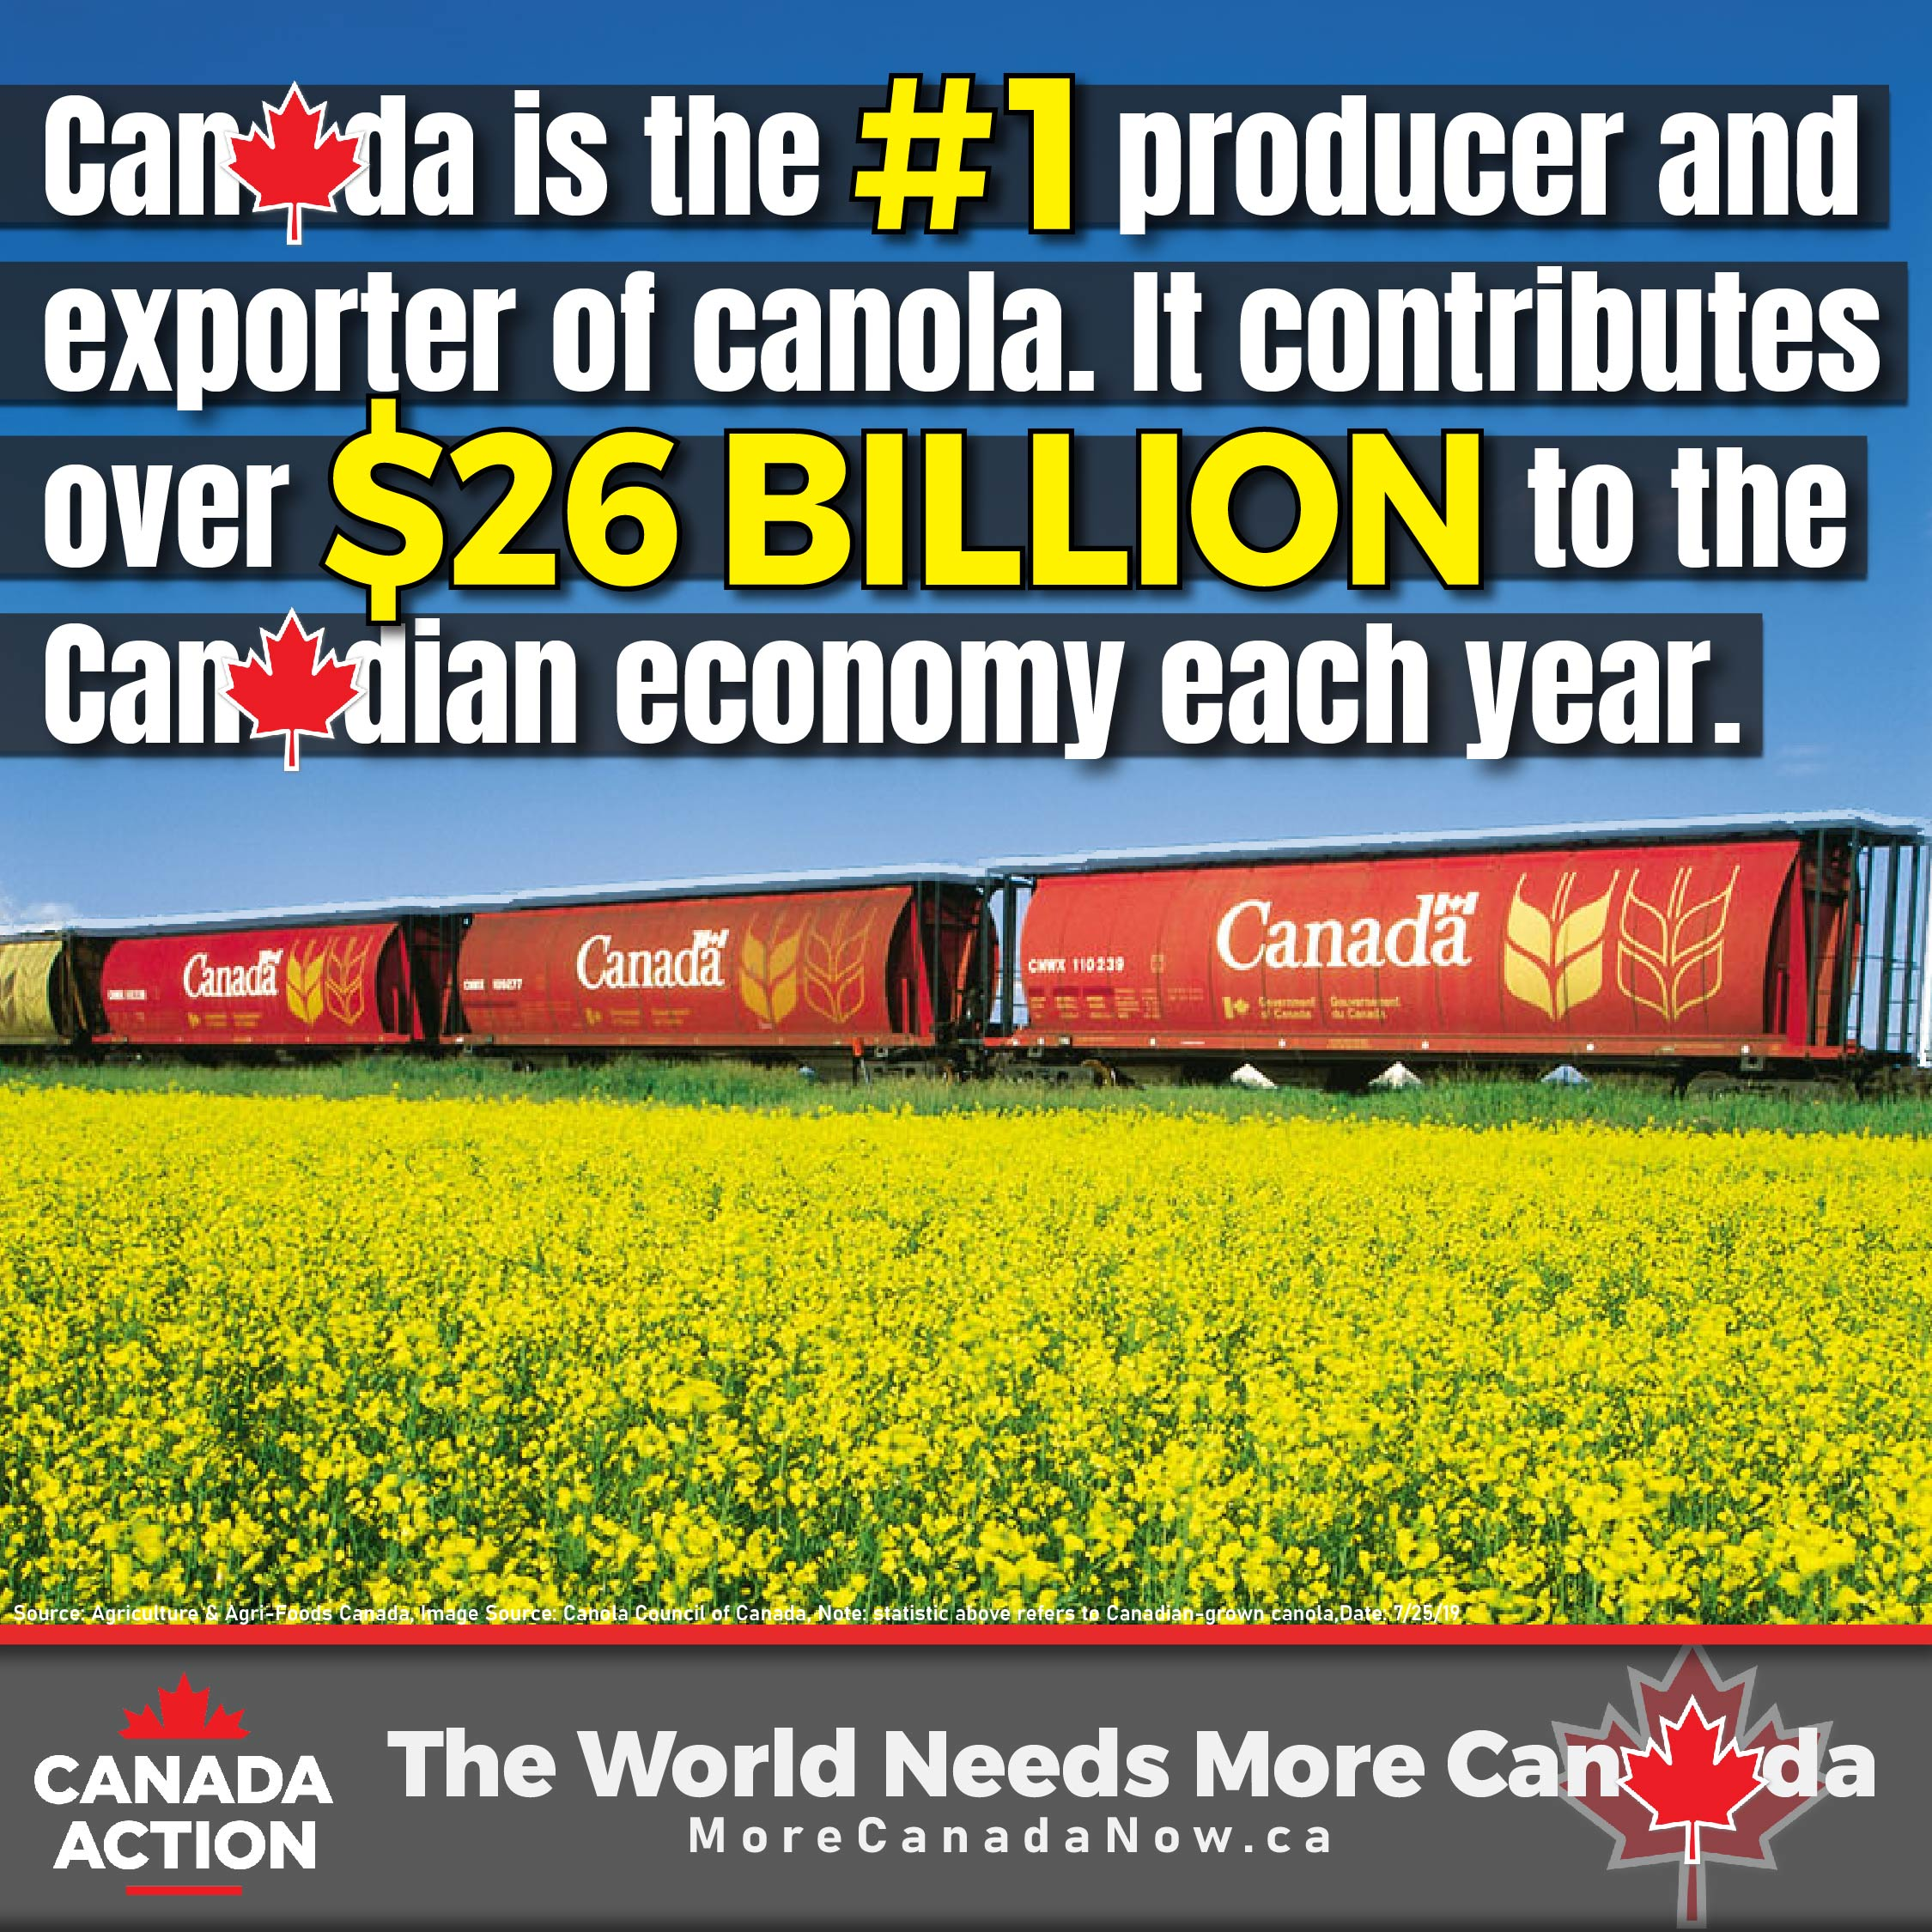 canada canola farming - #1 global exporter and producer of canola